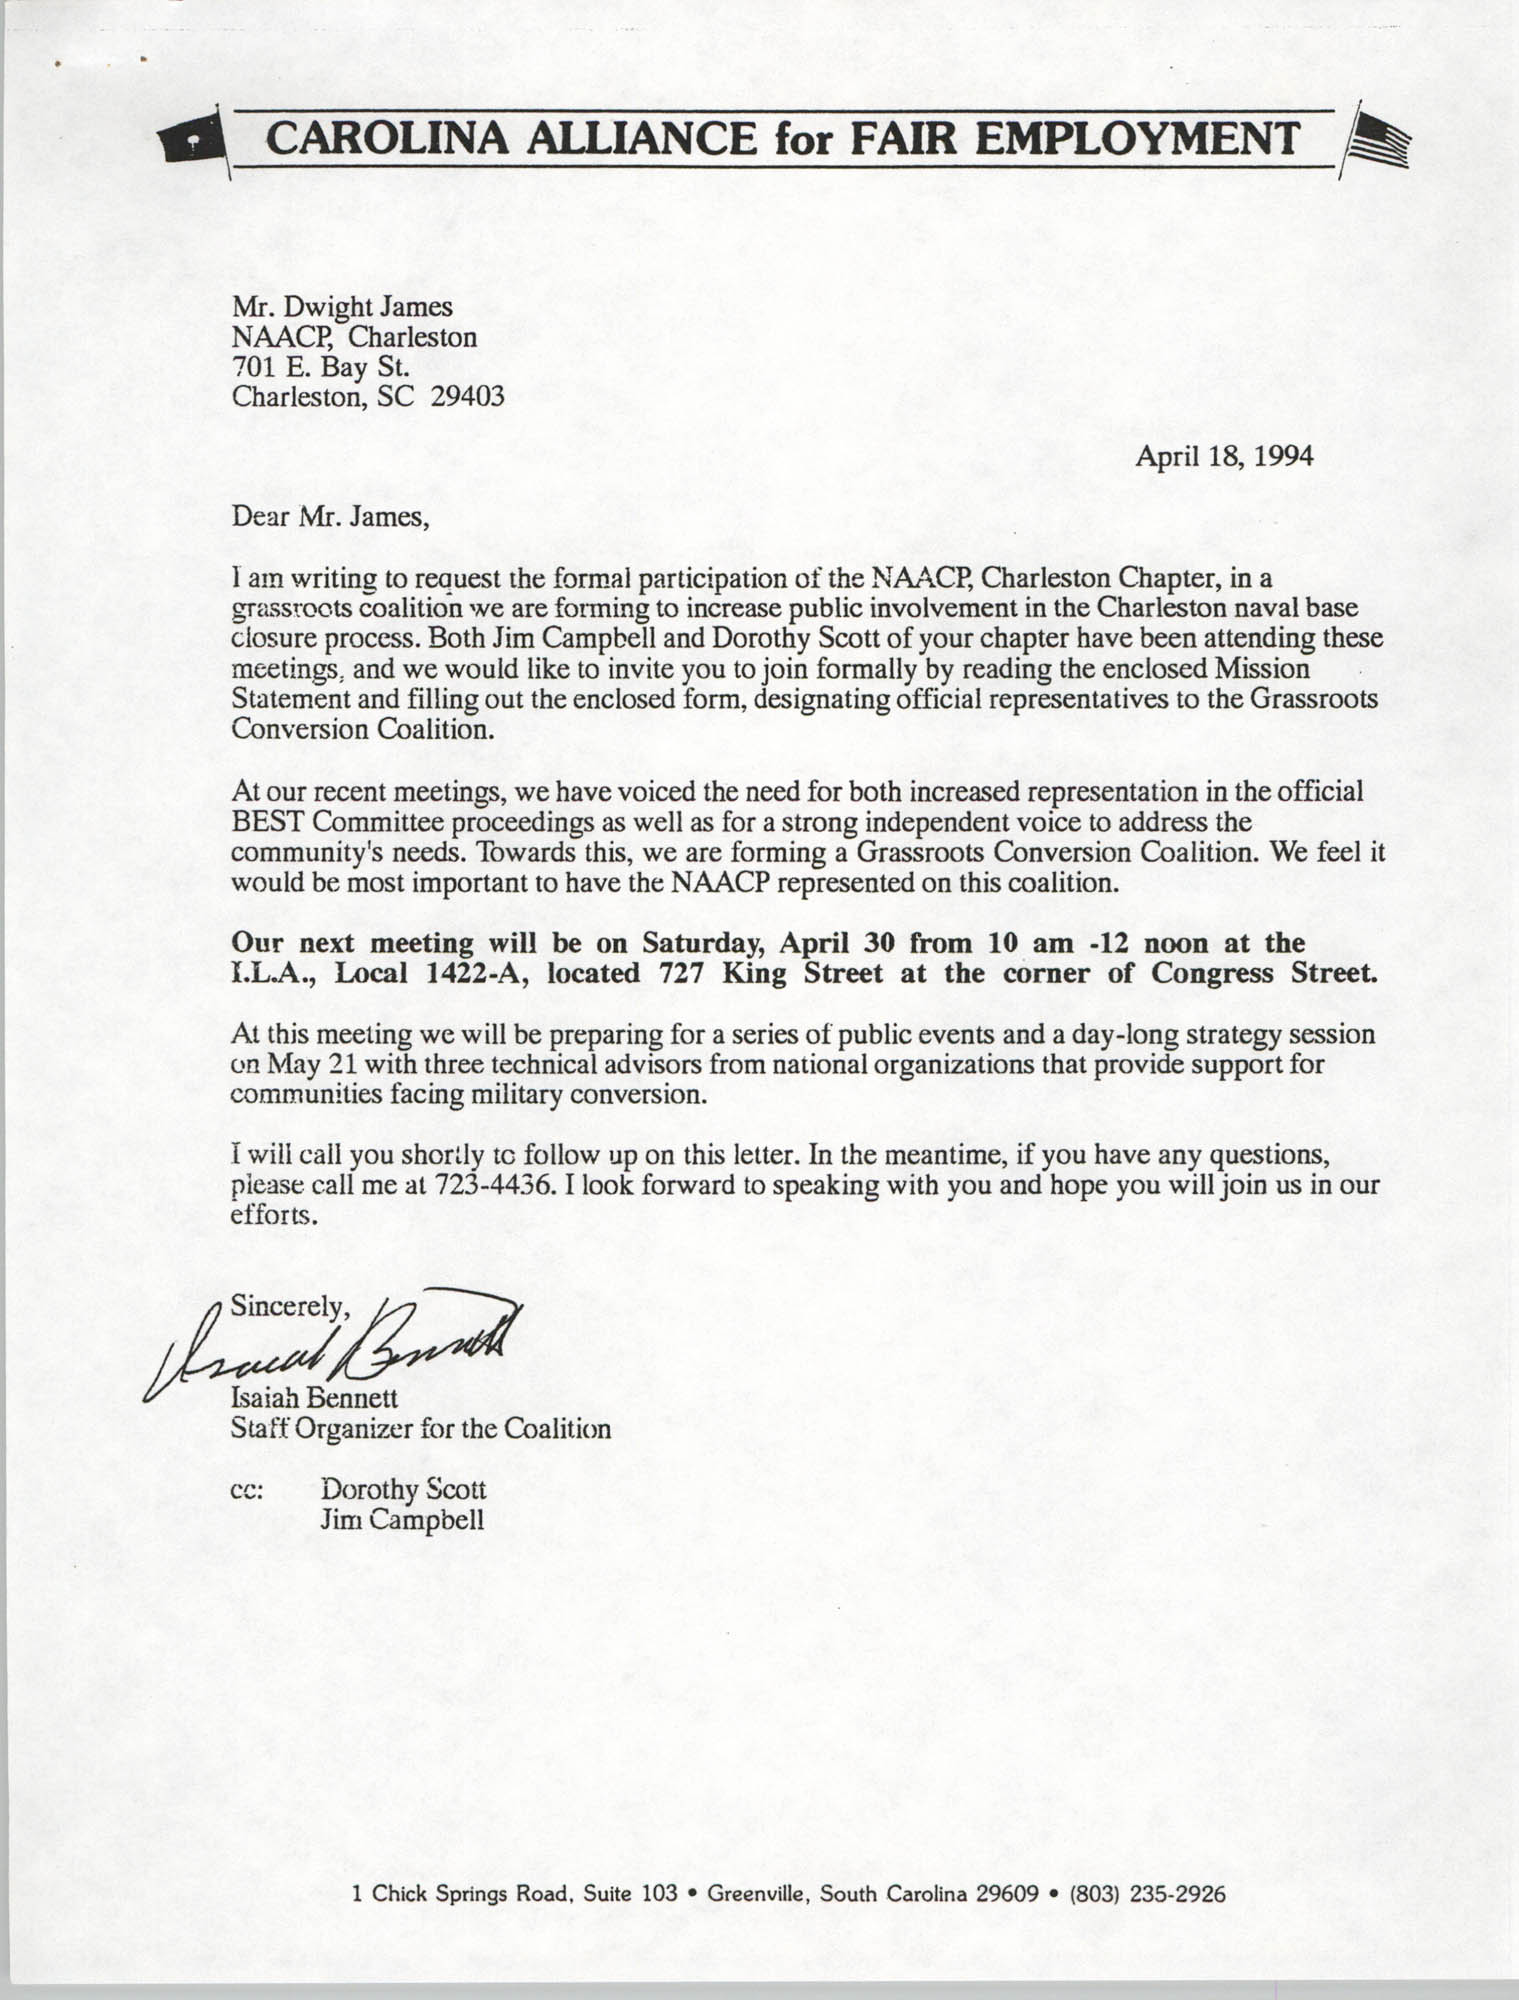 Letter from Isaiah Bennett to Dwight James, April 18, 1994